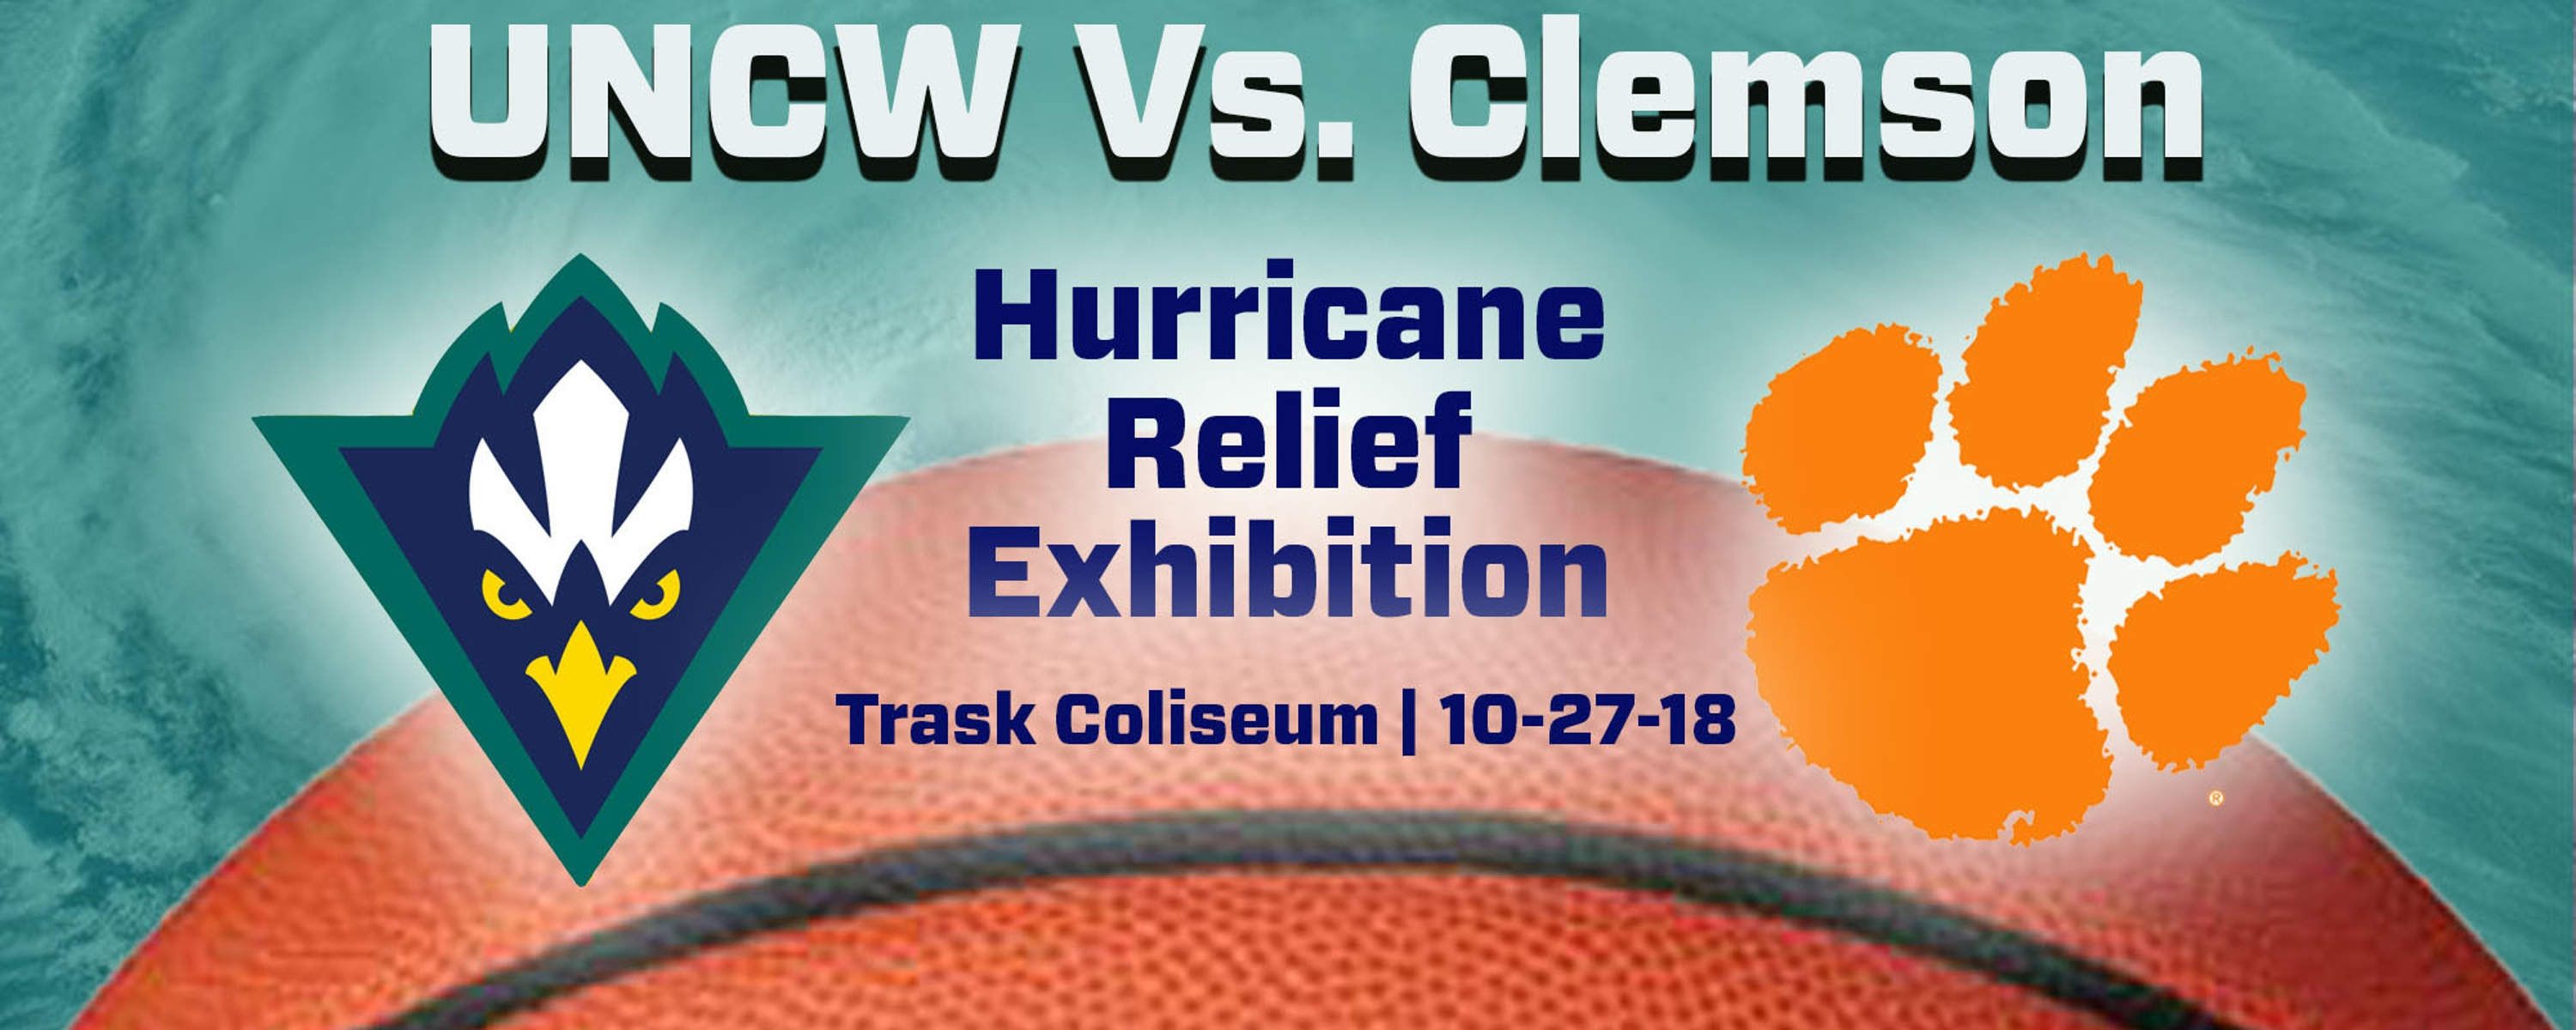 Hurricane relief basketball game